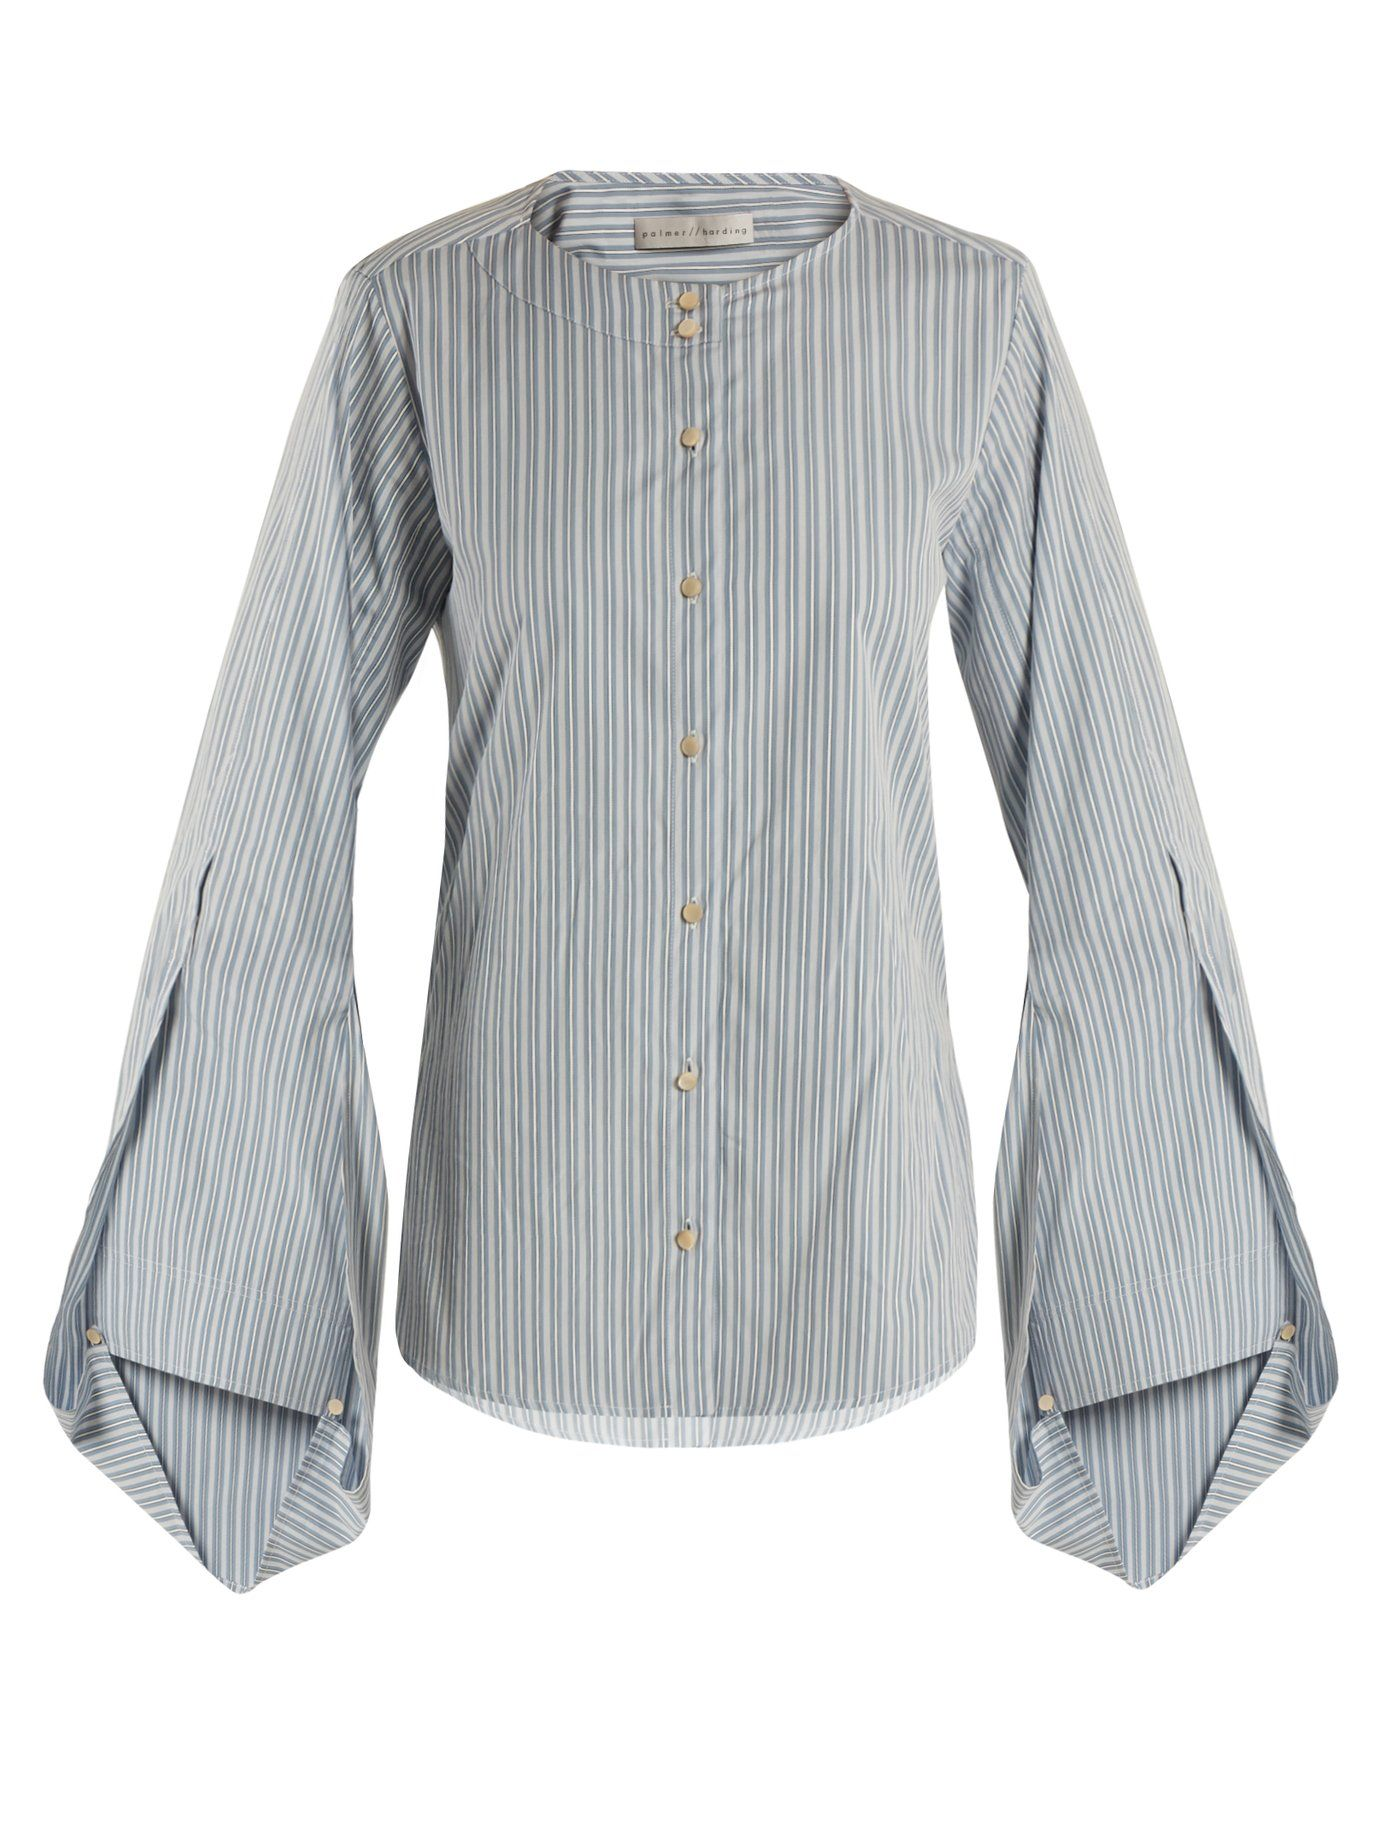 Balloon-sleeved cotton shirt Palmer//harding Cheap Sale Top Quality Outlet Latest Collections uFnGz